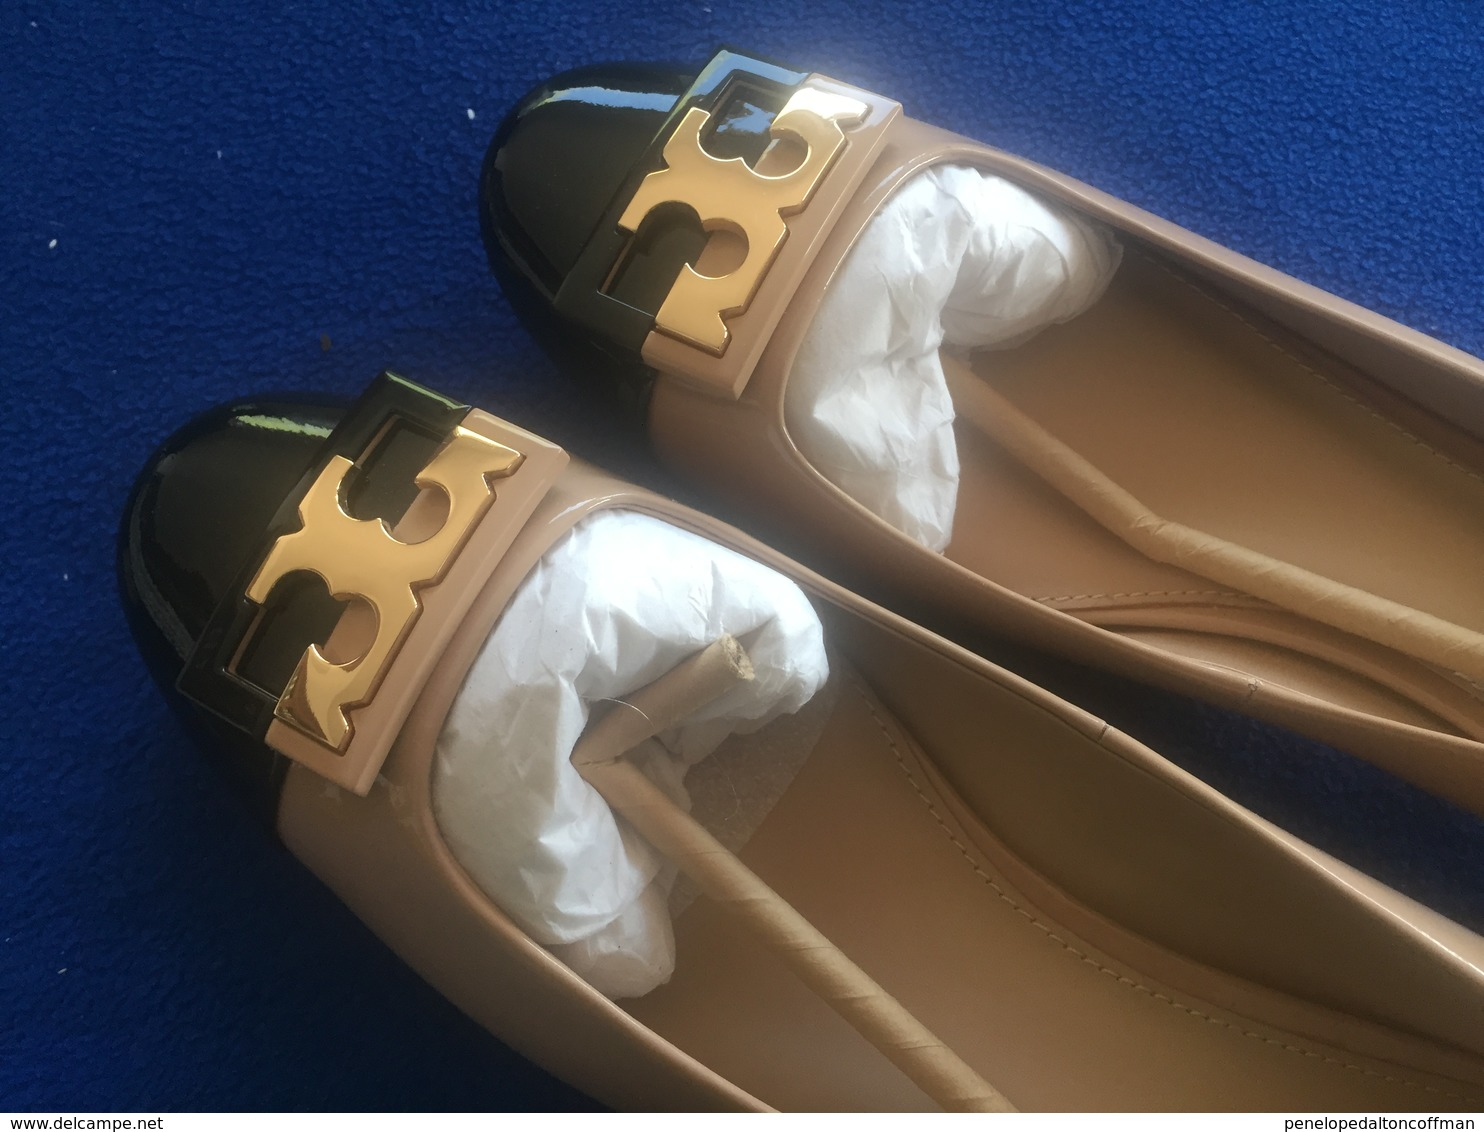 Tory Burch Gigi Color Block Patent Leather Pump Size 10.5 M MSRP $275 NWOT - Other